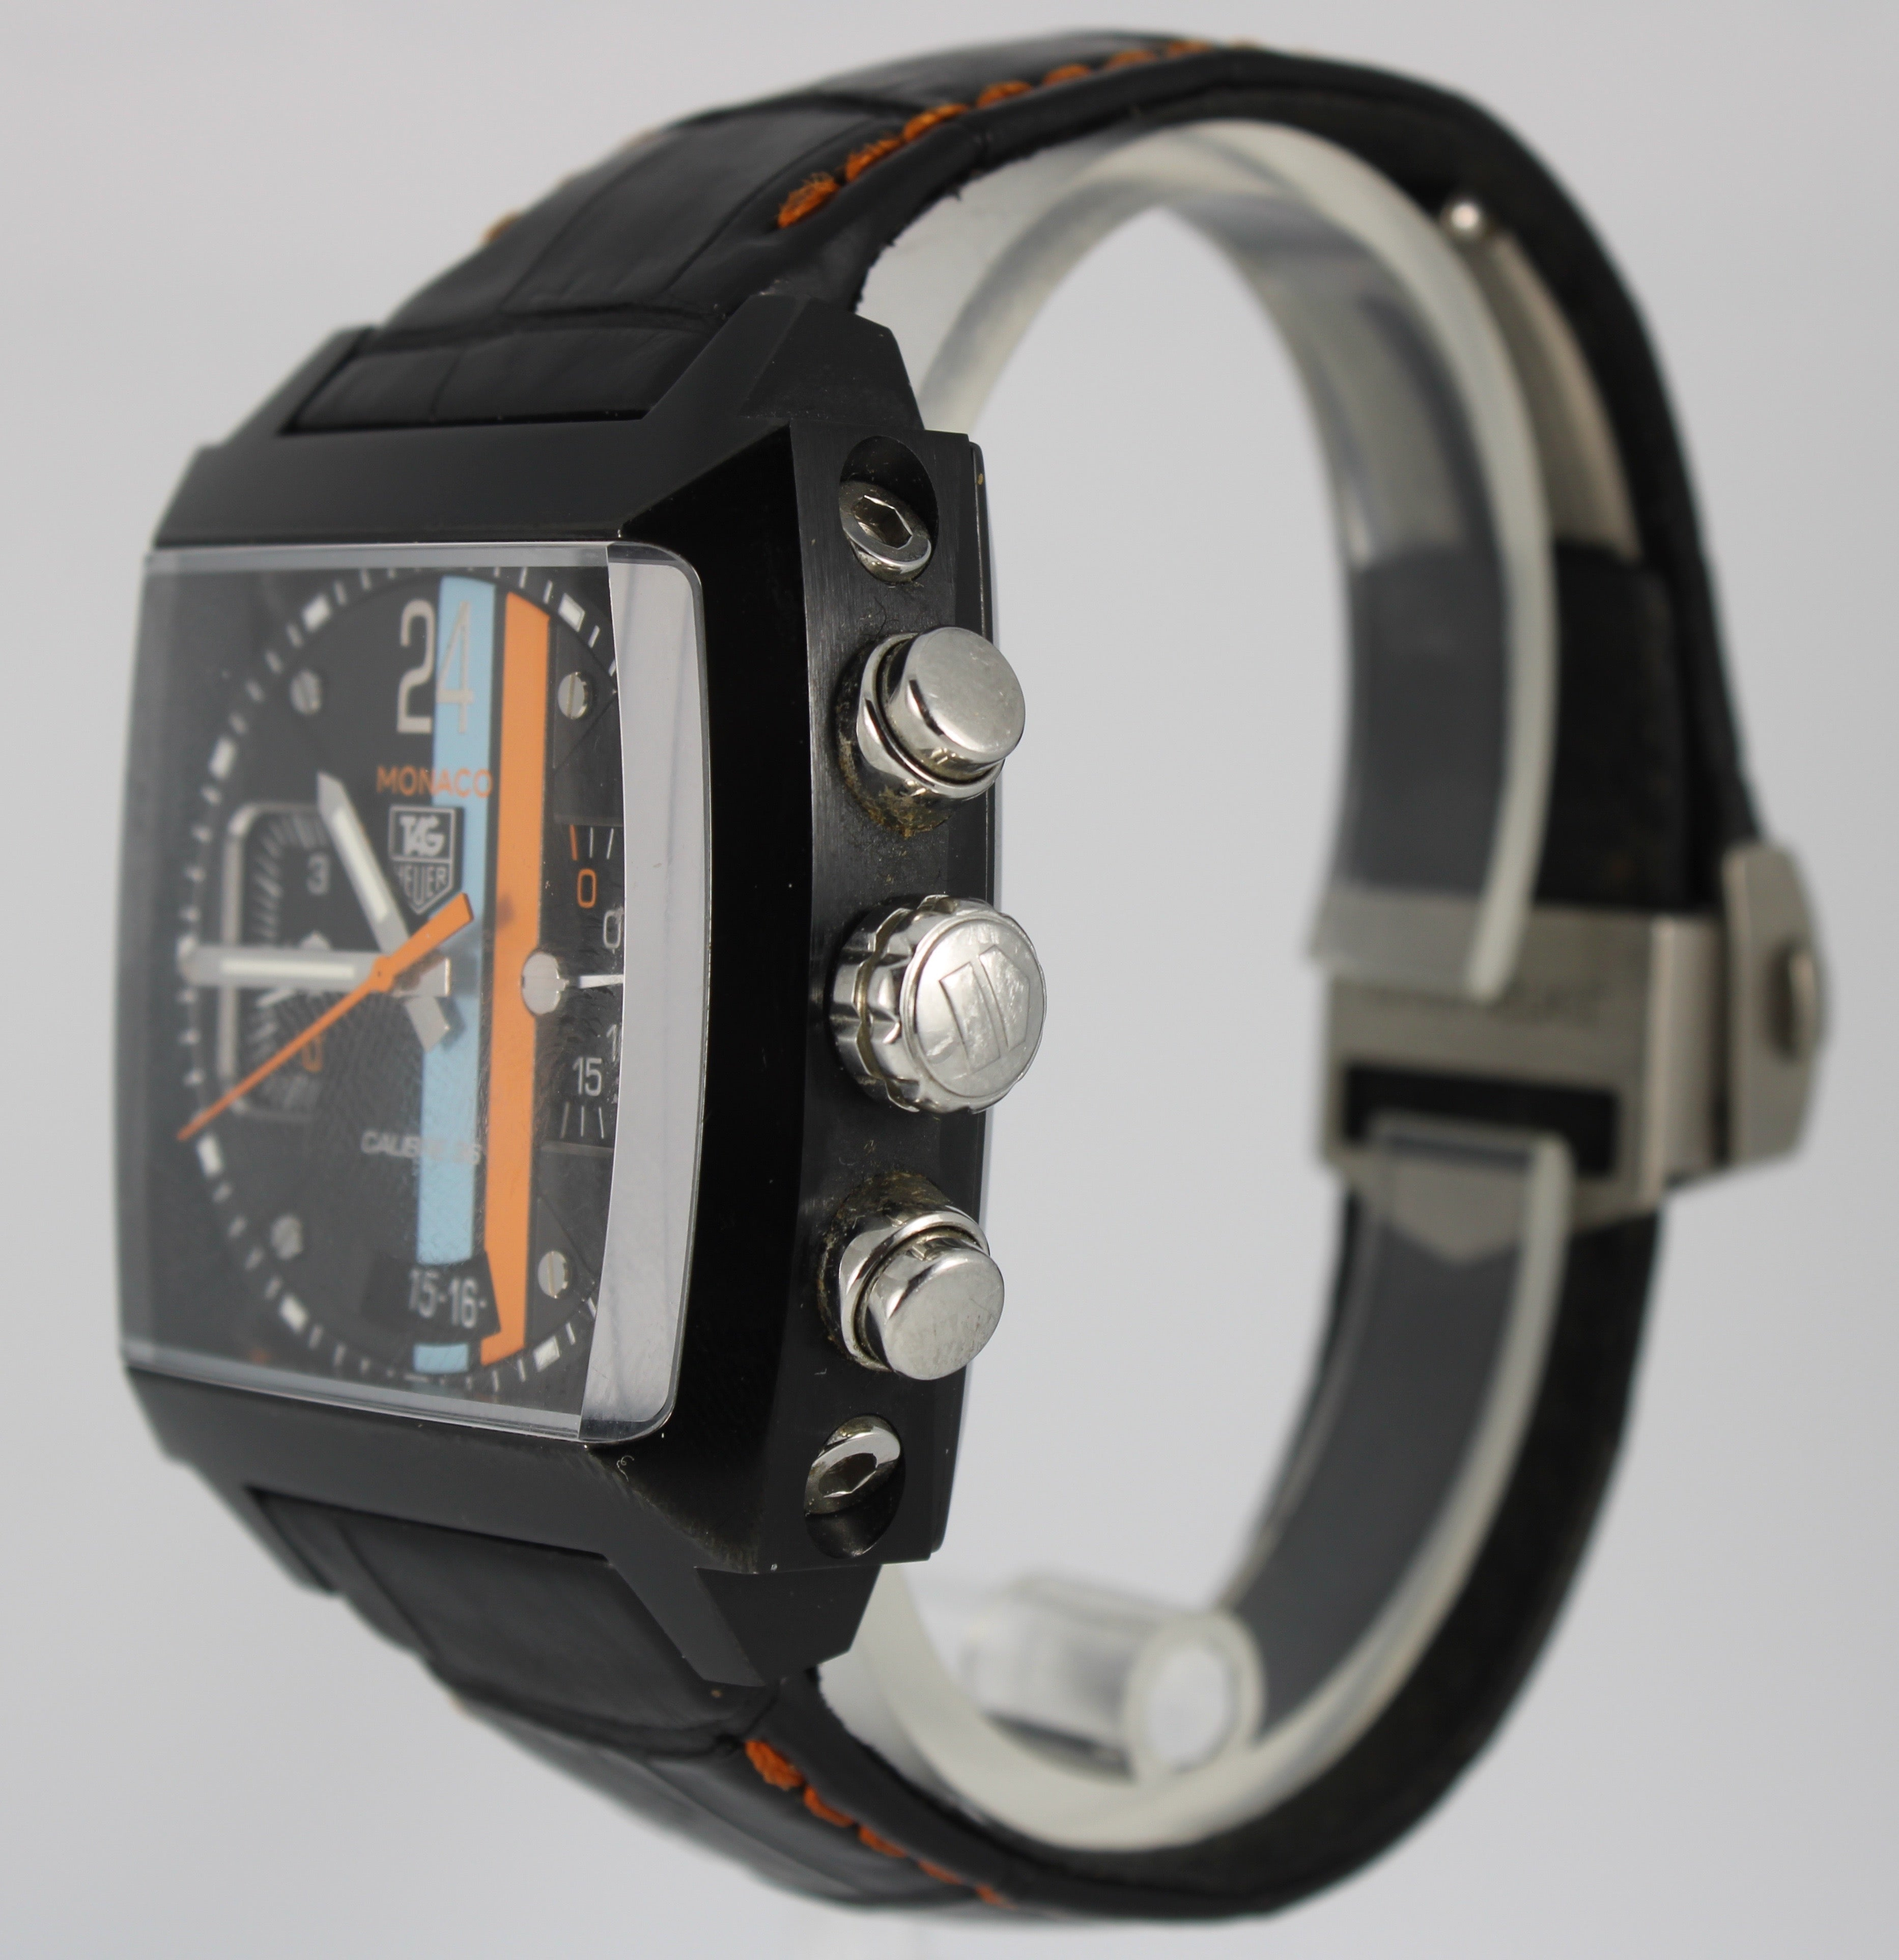 TAG Heuer Monaco Chronograph Date Calibre 36 CAL5110 Automatic 40.5mm Black Dial